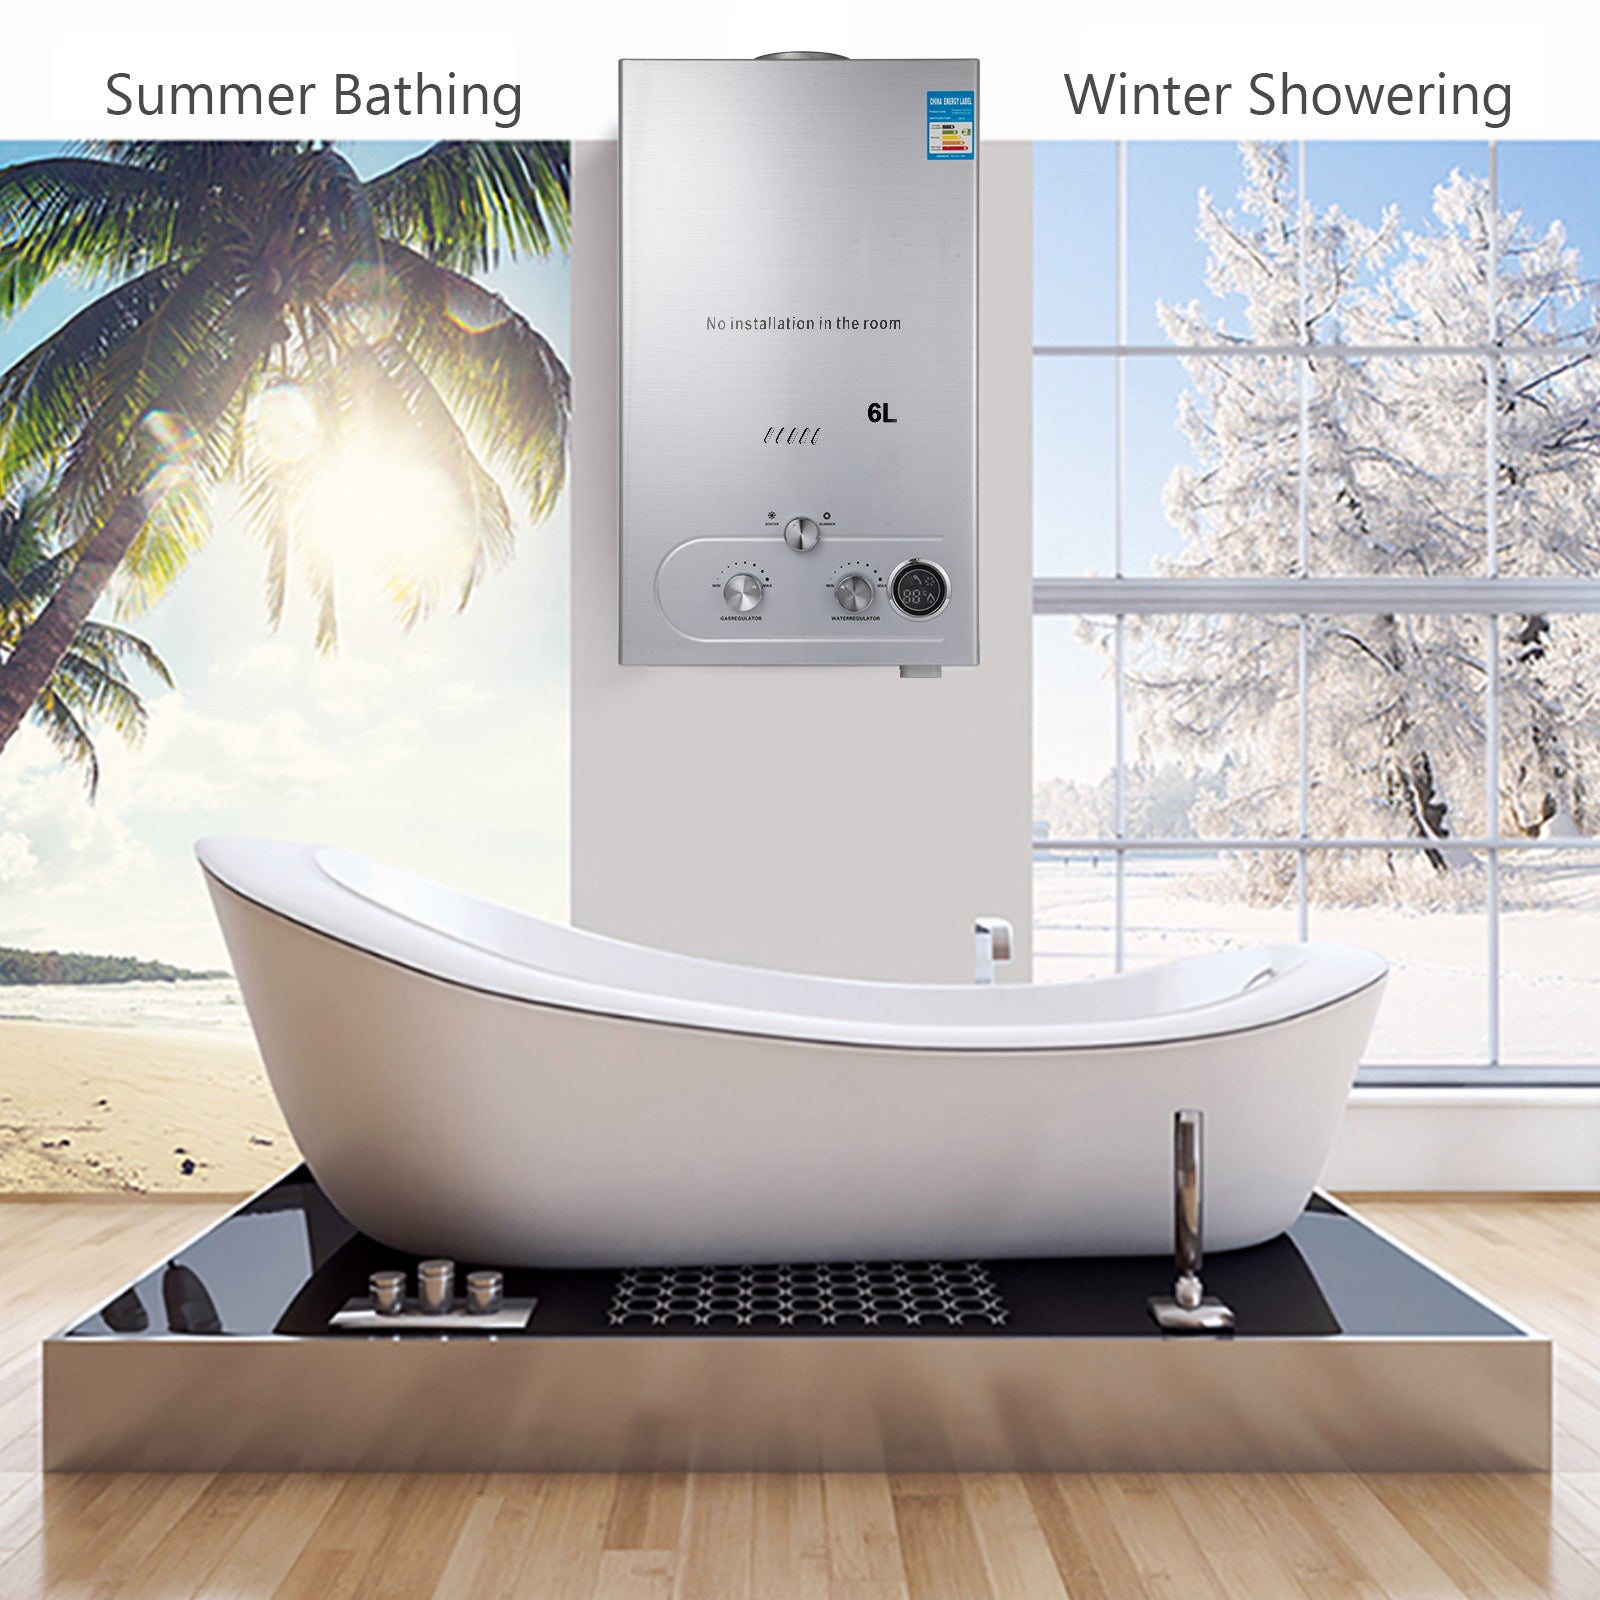 Hot Water Heater 6l Tankless Instant Boiler Methane Gas Lng W/ Shower Head